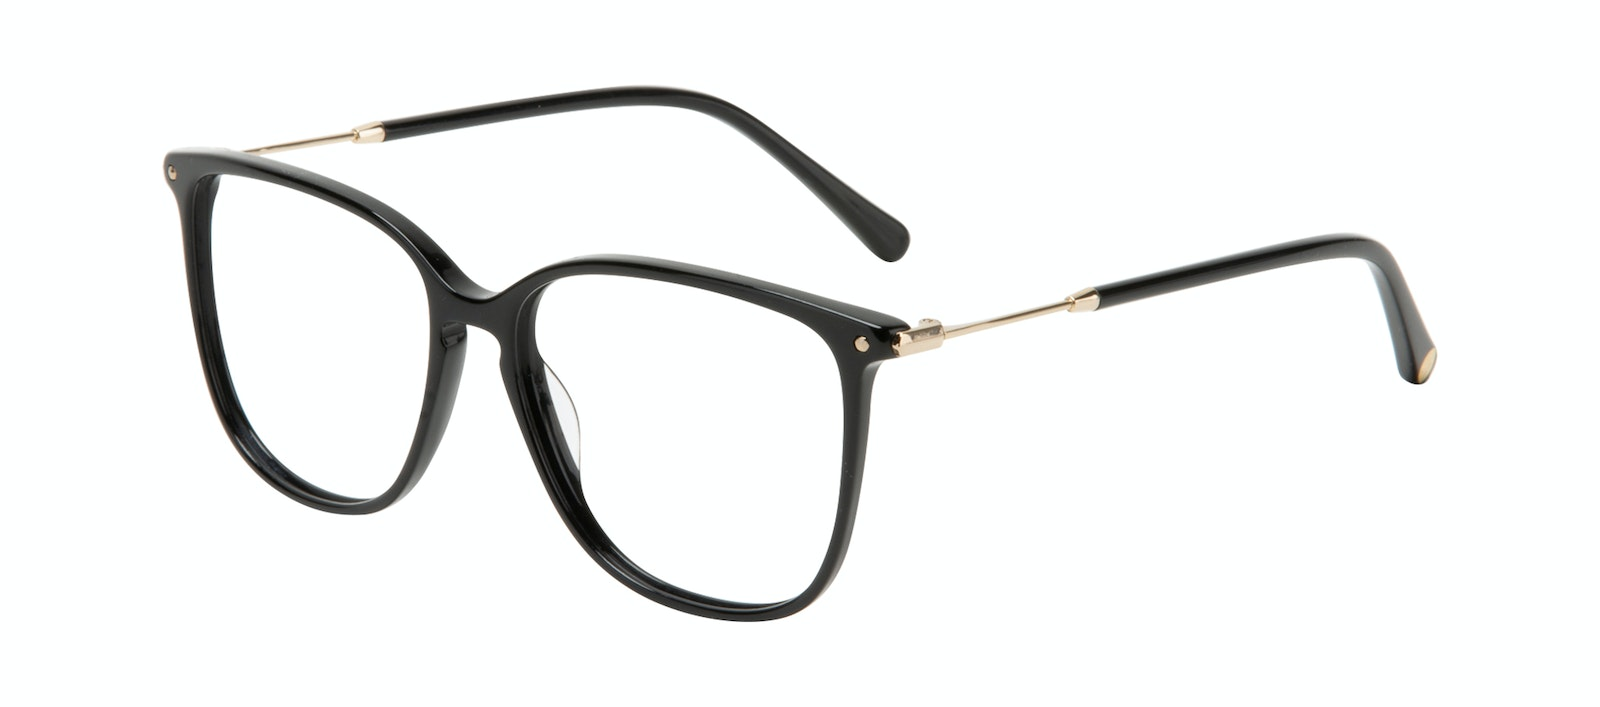 Affordable Fashion Glasses Square Eyeglasses Women Sonia Pitch Black Tilt